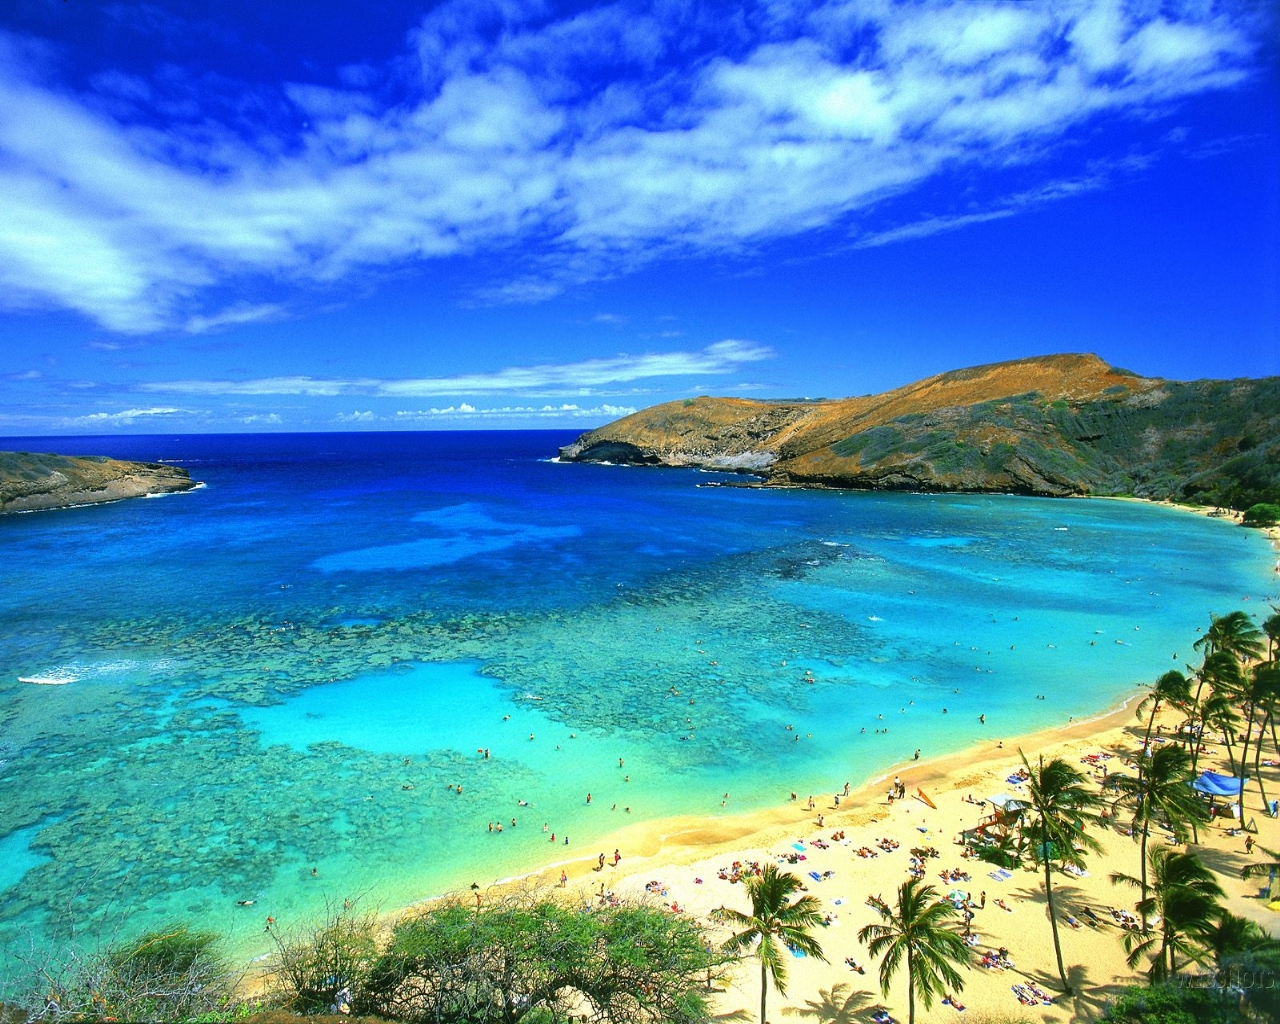 Enjoy Hawaii Maui beach resorts, hotels, vacations packages